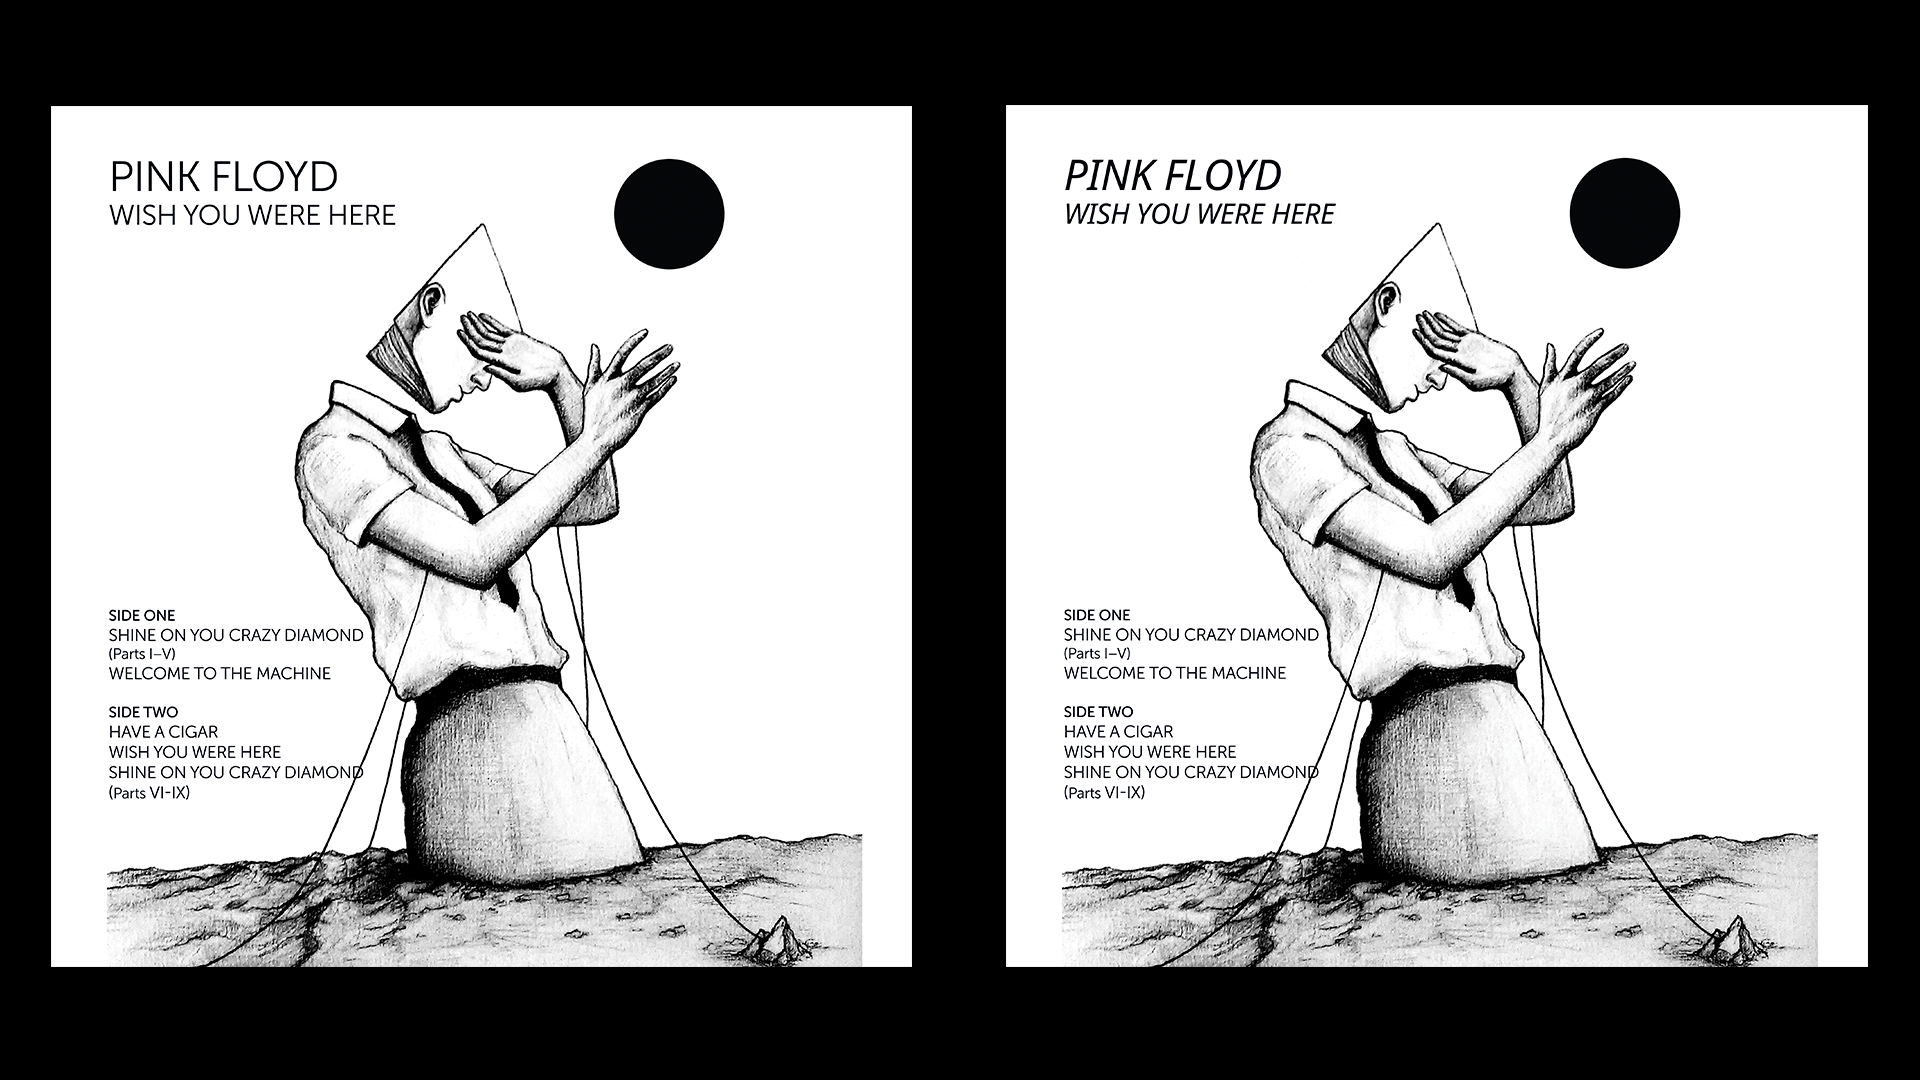 Album Cover Design  Pink Floyd - Wish You Were Here on Behance